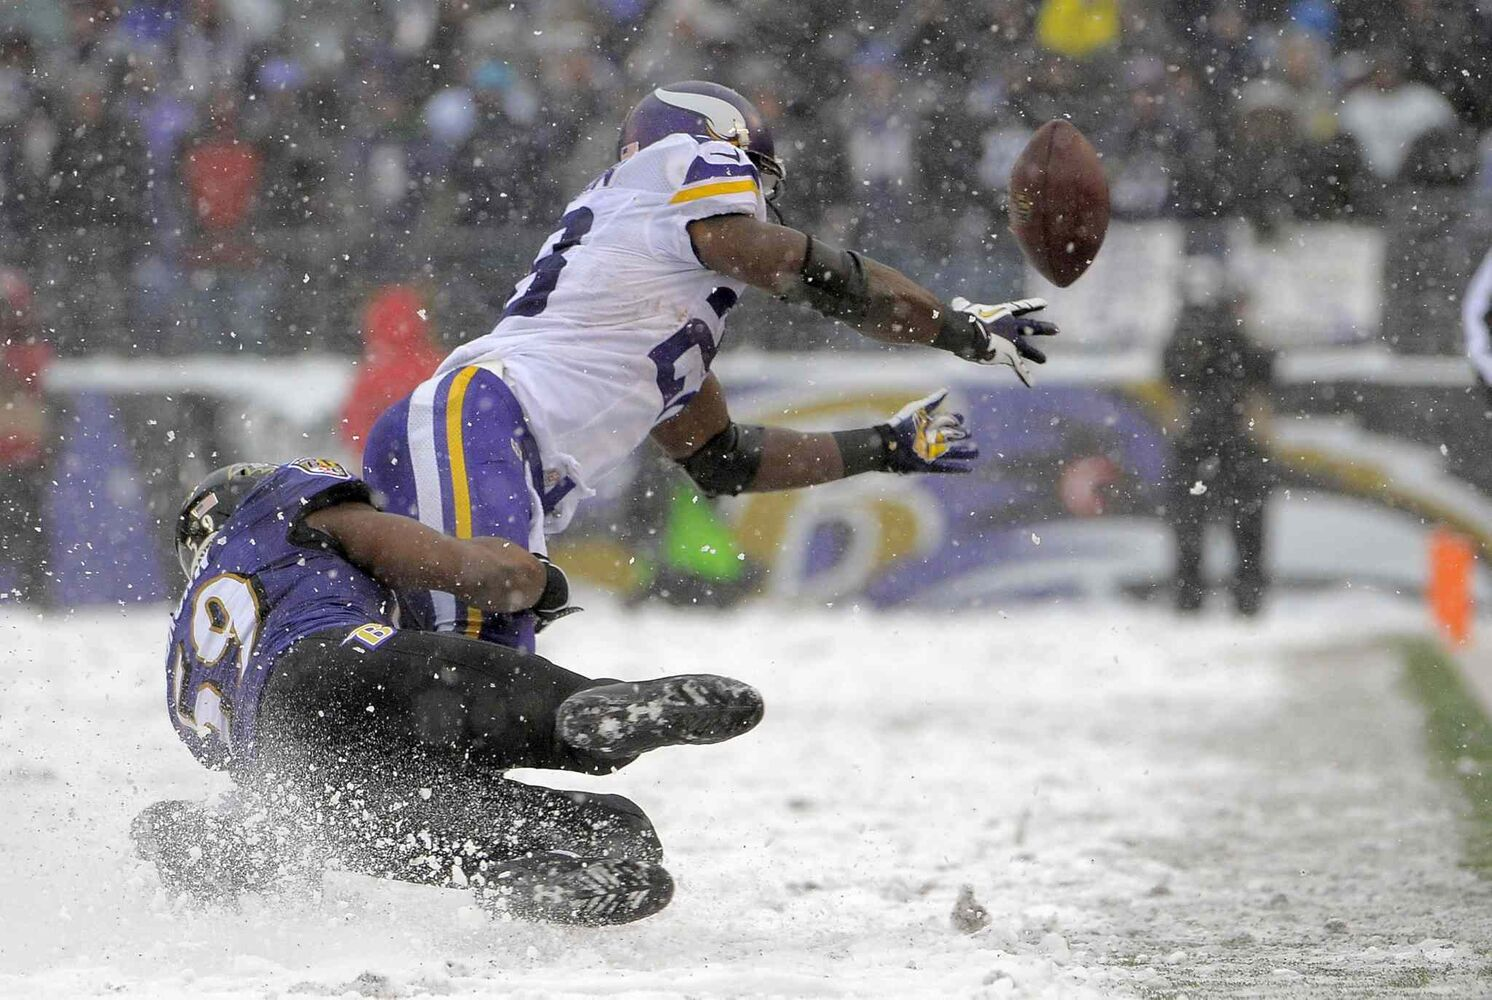 Baltimore Ravens linebacker Arthur Brown (left) tackles Minnesota Vikings running back Adrian Peterson, who fumbles the football as he falls and is injured during the second quarter. The Ravens beat the Vikings 29-26. (Tribune Media MCT)